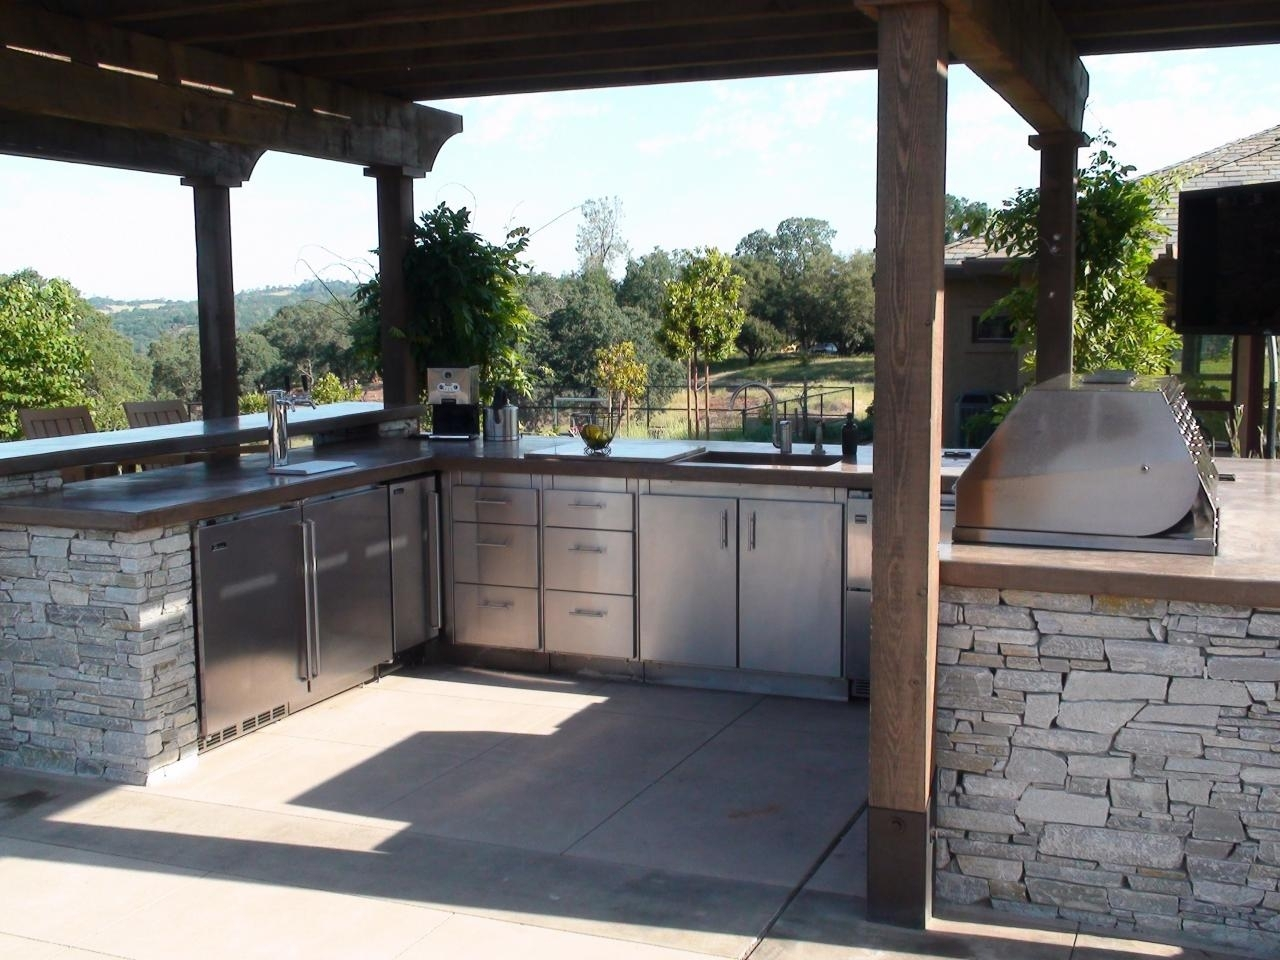 Mixing Kitchen Cabinet Styles And Finishes Hgtv Throughout Outdoor Kitchen Wood Countertops Nice Outdoor Kitchen Wood Countertops Inspiration